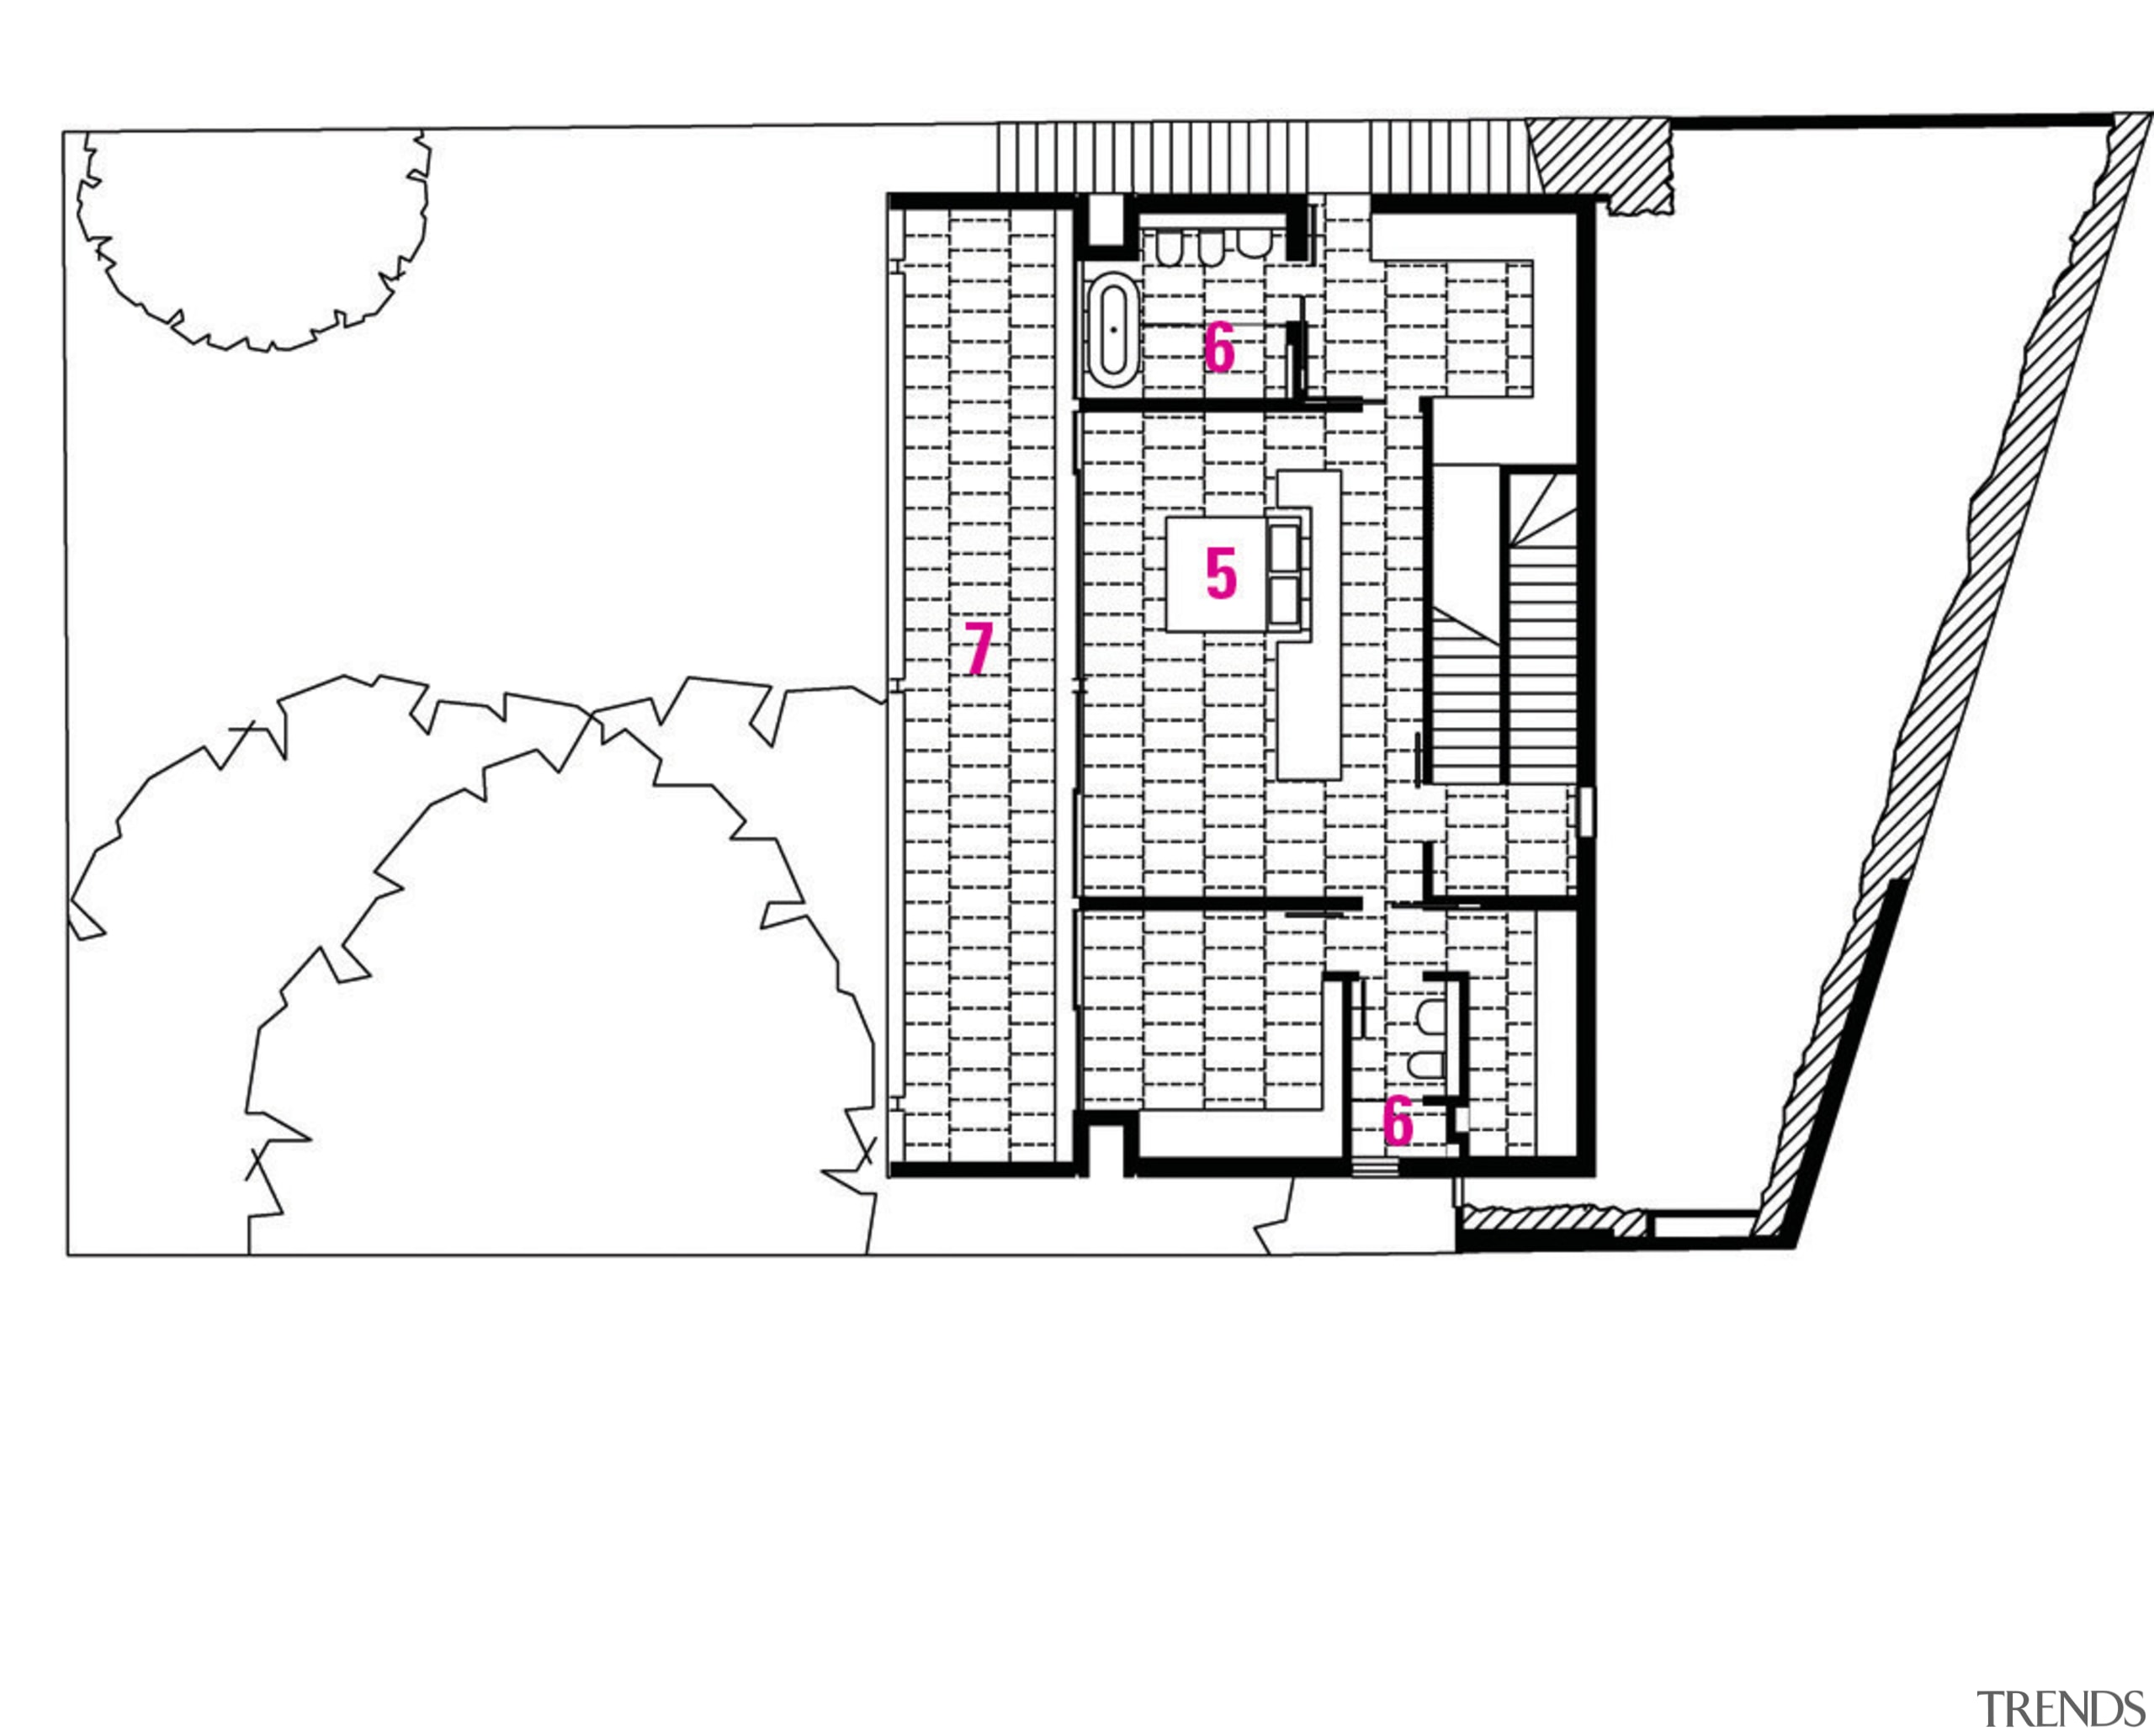 1 Garge. 2 Entry. 3 Family room. 4 area, design, diagram, drawing, floor plan, font, line, plan, product, text, white